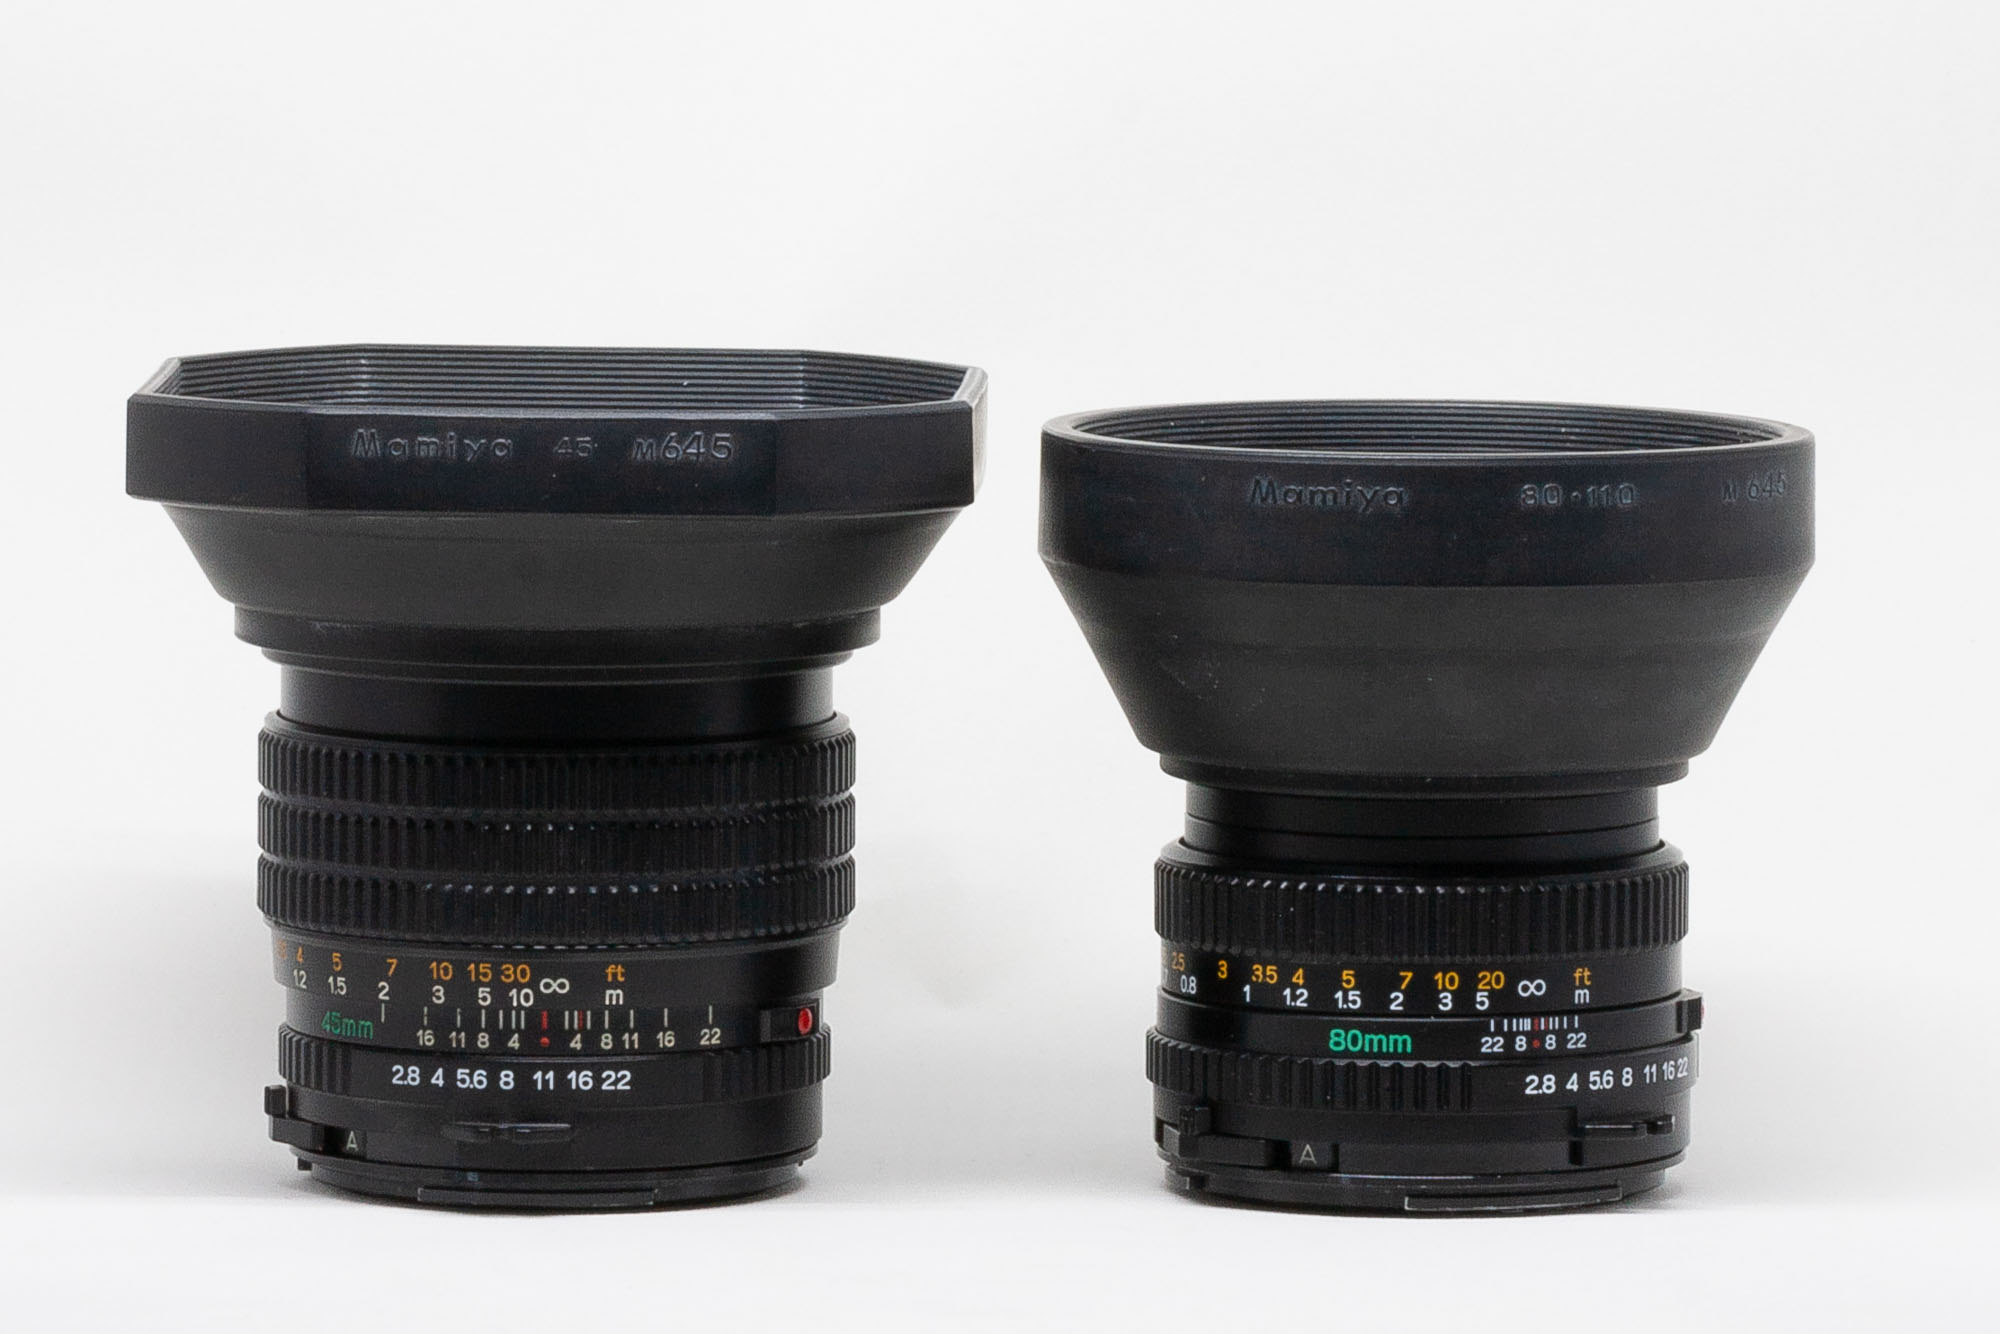 Mamiya-Sekor C 45mm f:2.8 N and Mamiya-Sekor C 80mm f:2.8 N lenses with lens hoods attached